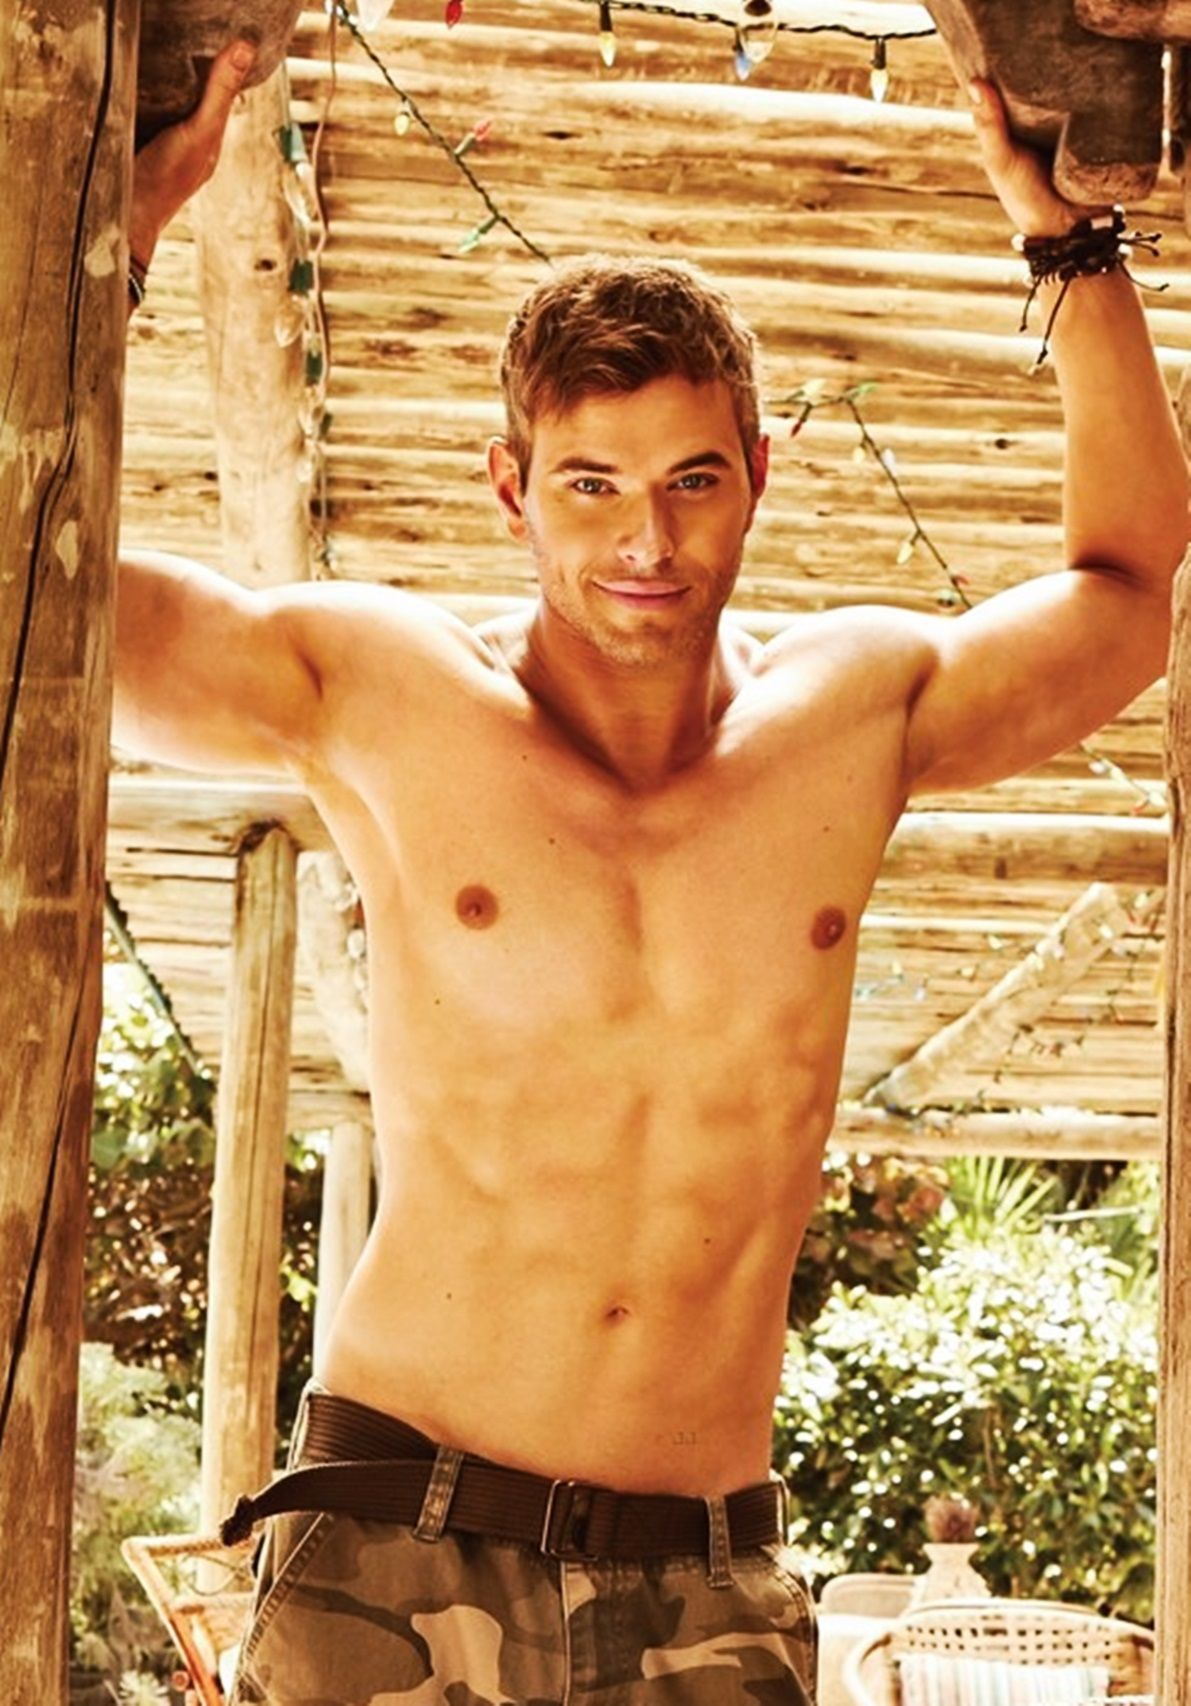 Kellan Lutz- My ultimate man crush he is SUCH A HUNK!!!!